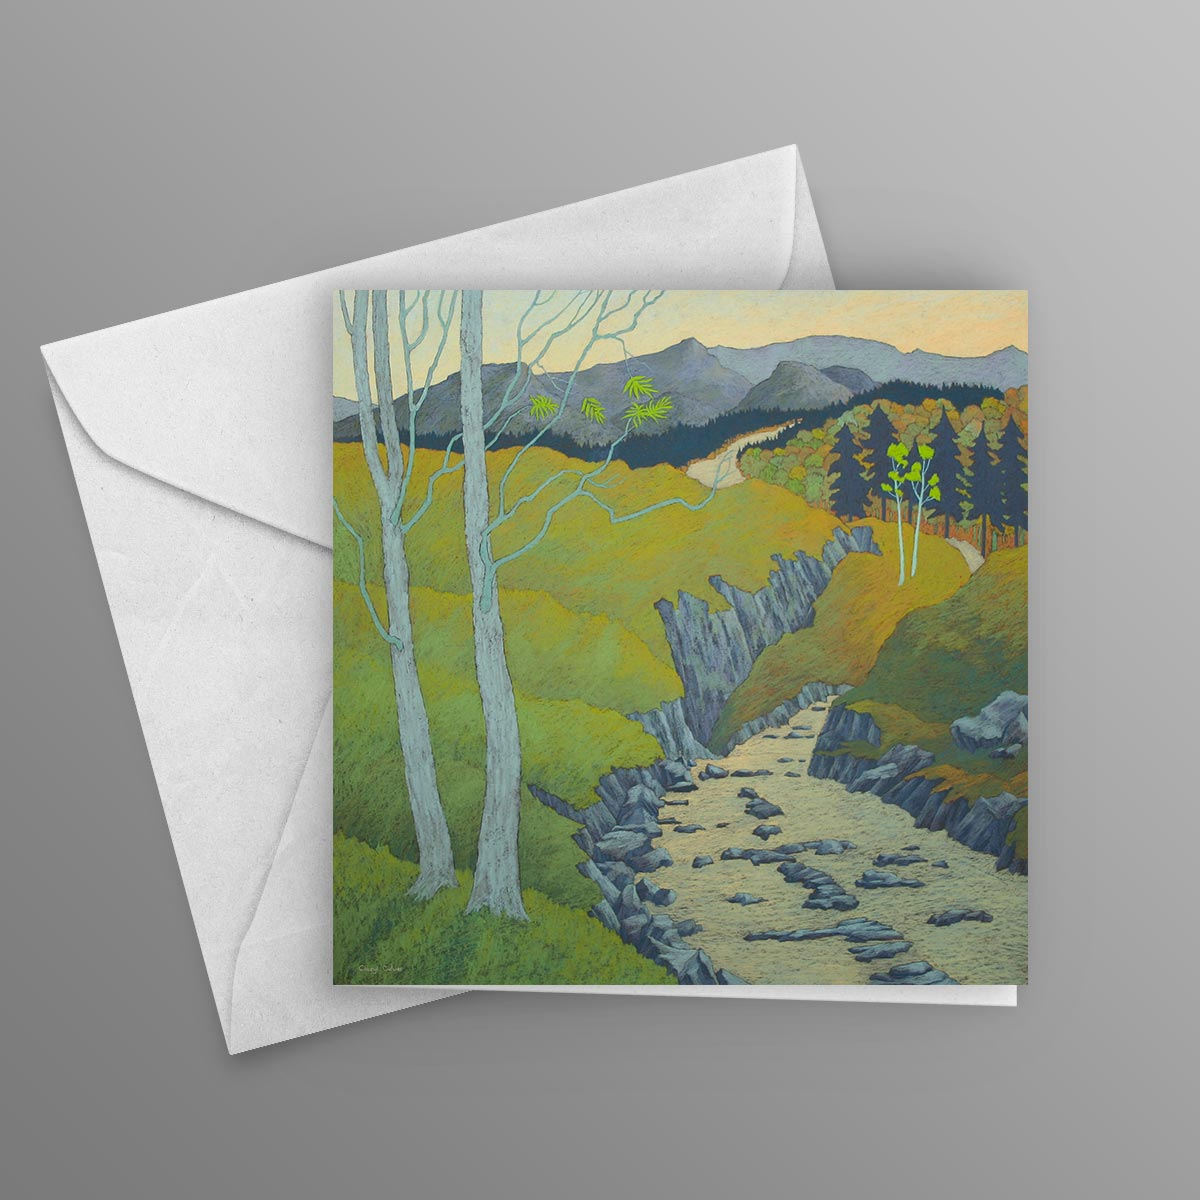 The magic of the fells greetings card 145mm x 145mm cheryl culver the magic of the fells greetings card kristyandbryce Images